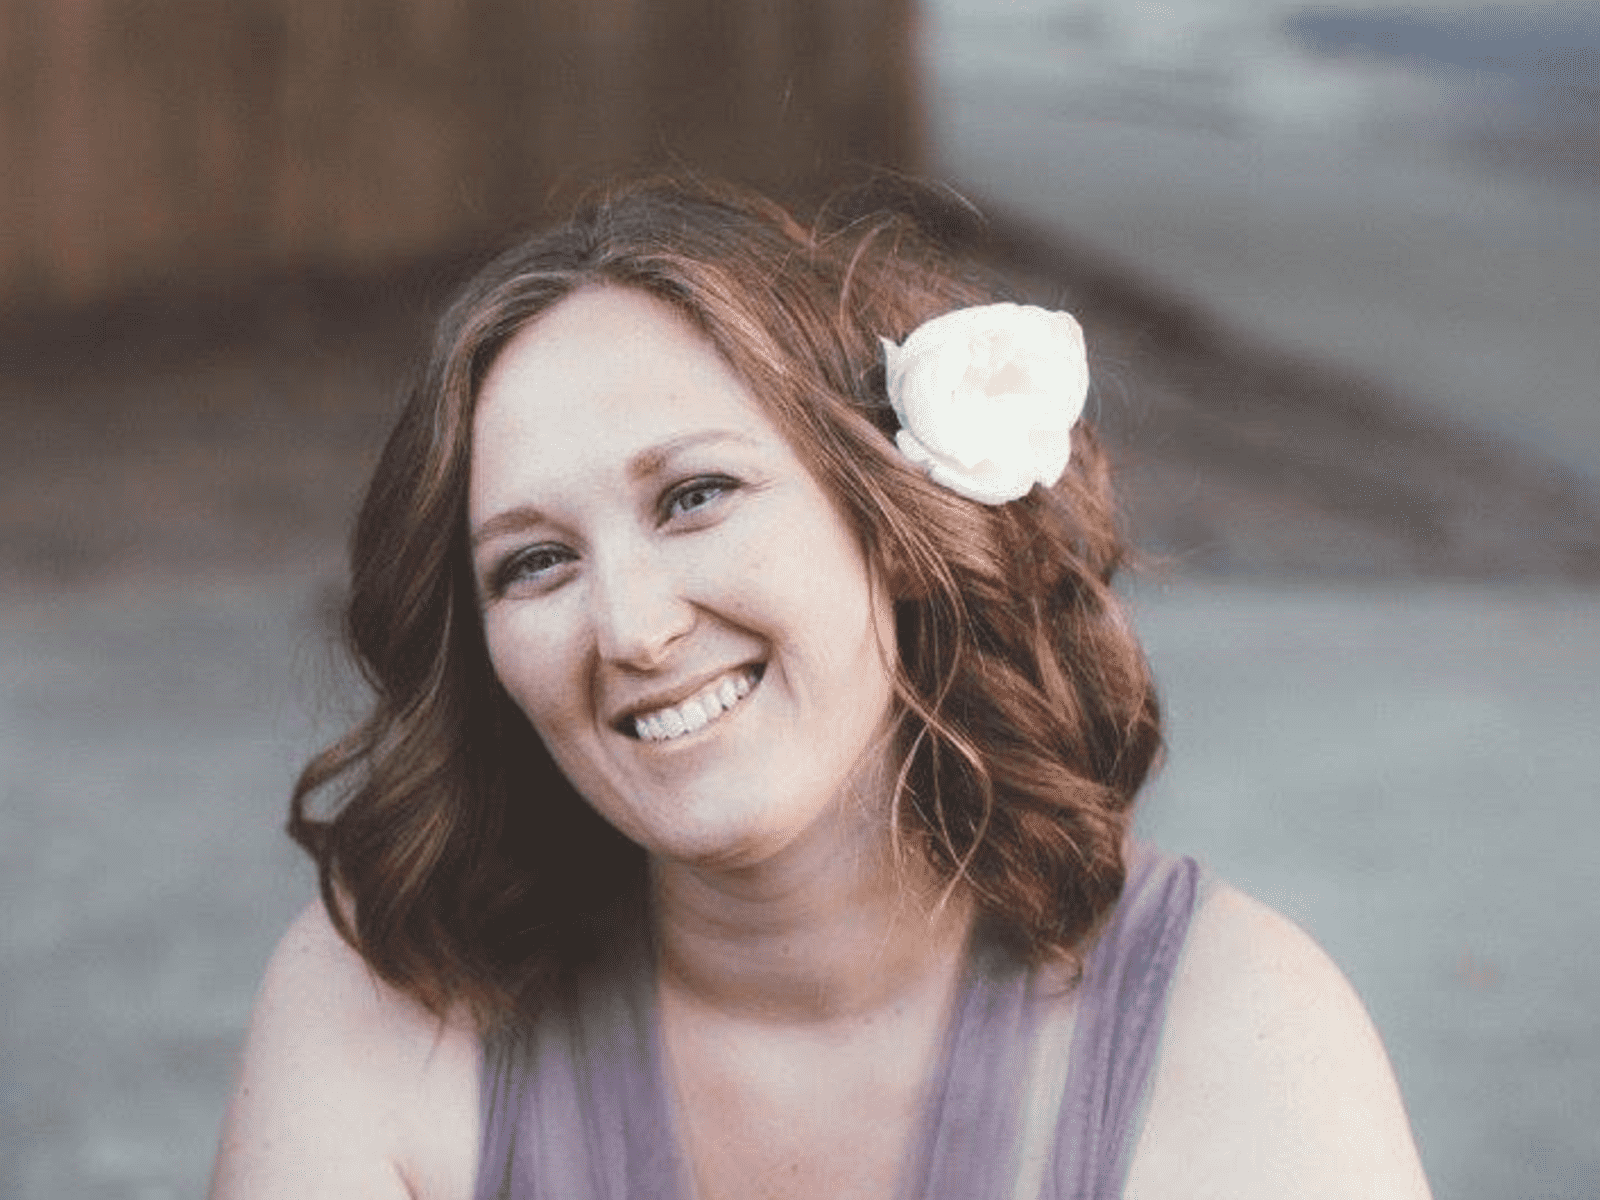 Erin from Pacific Grove, California, United States